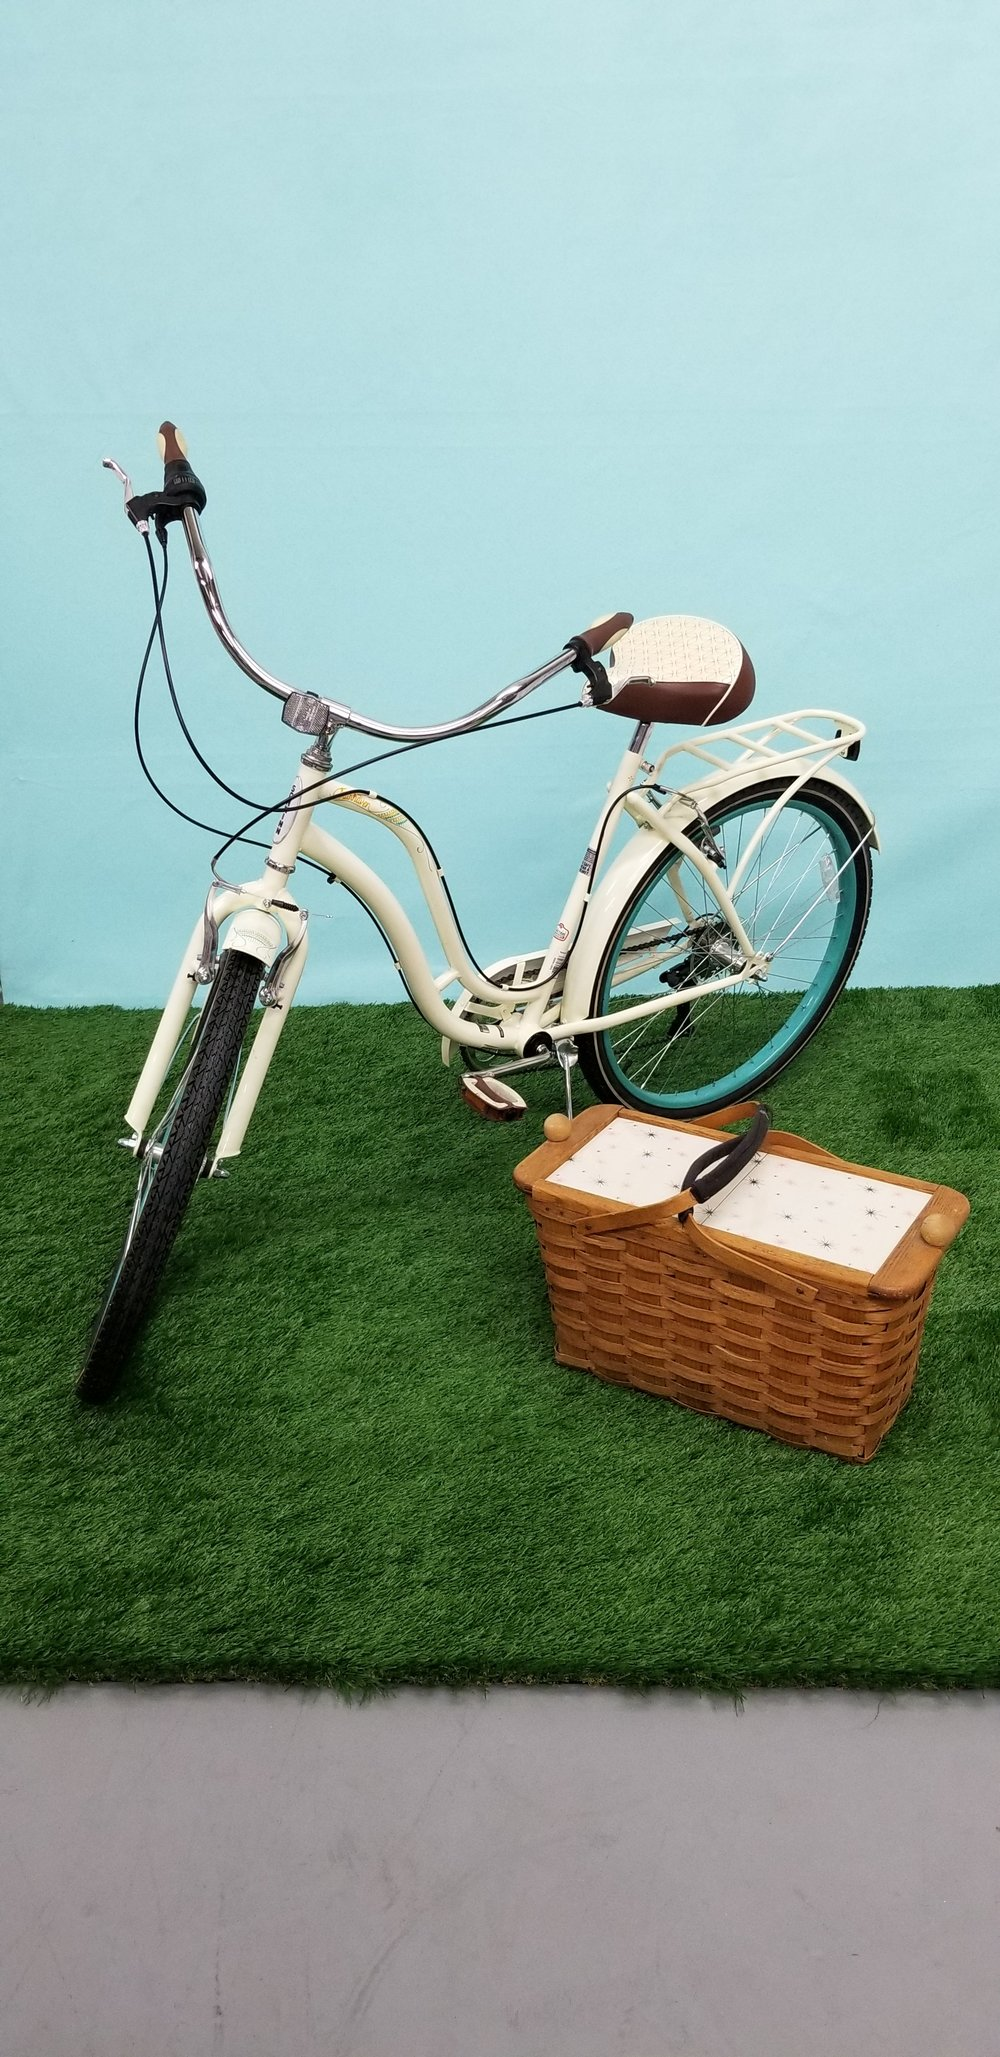 Vintage bicycle and grass floor